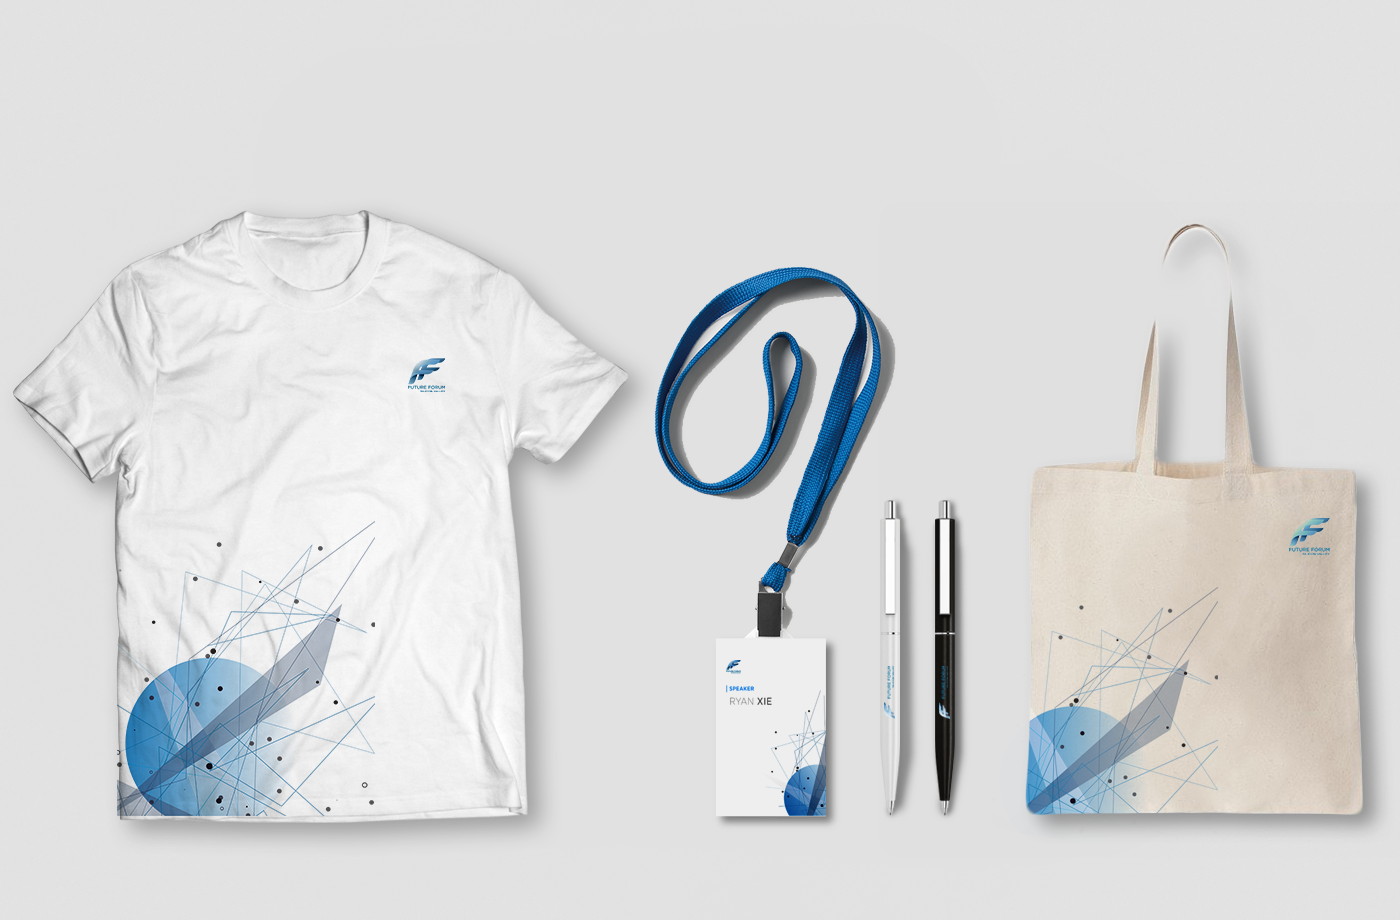 Event T-shirt, Name Tag, Pen and Canvas Bag